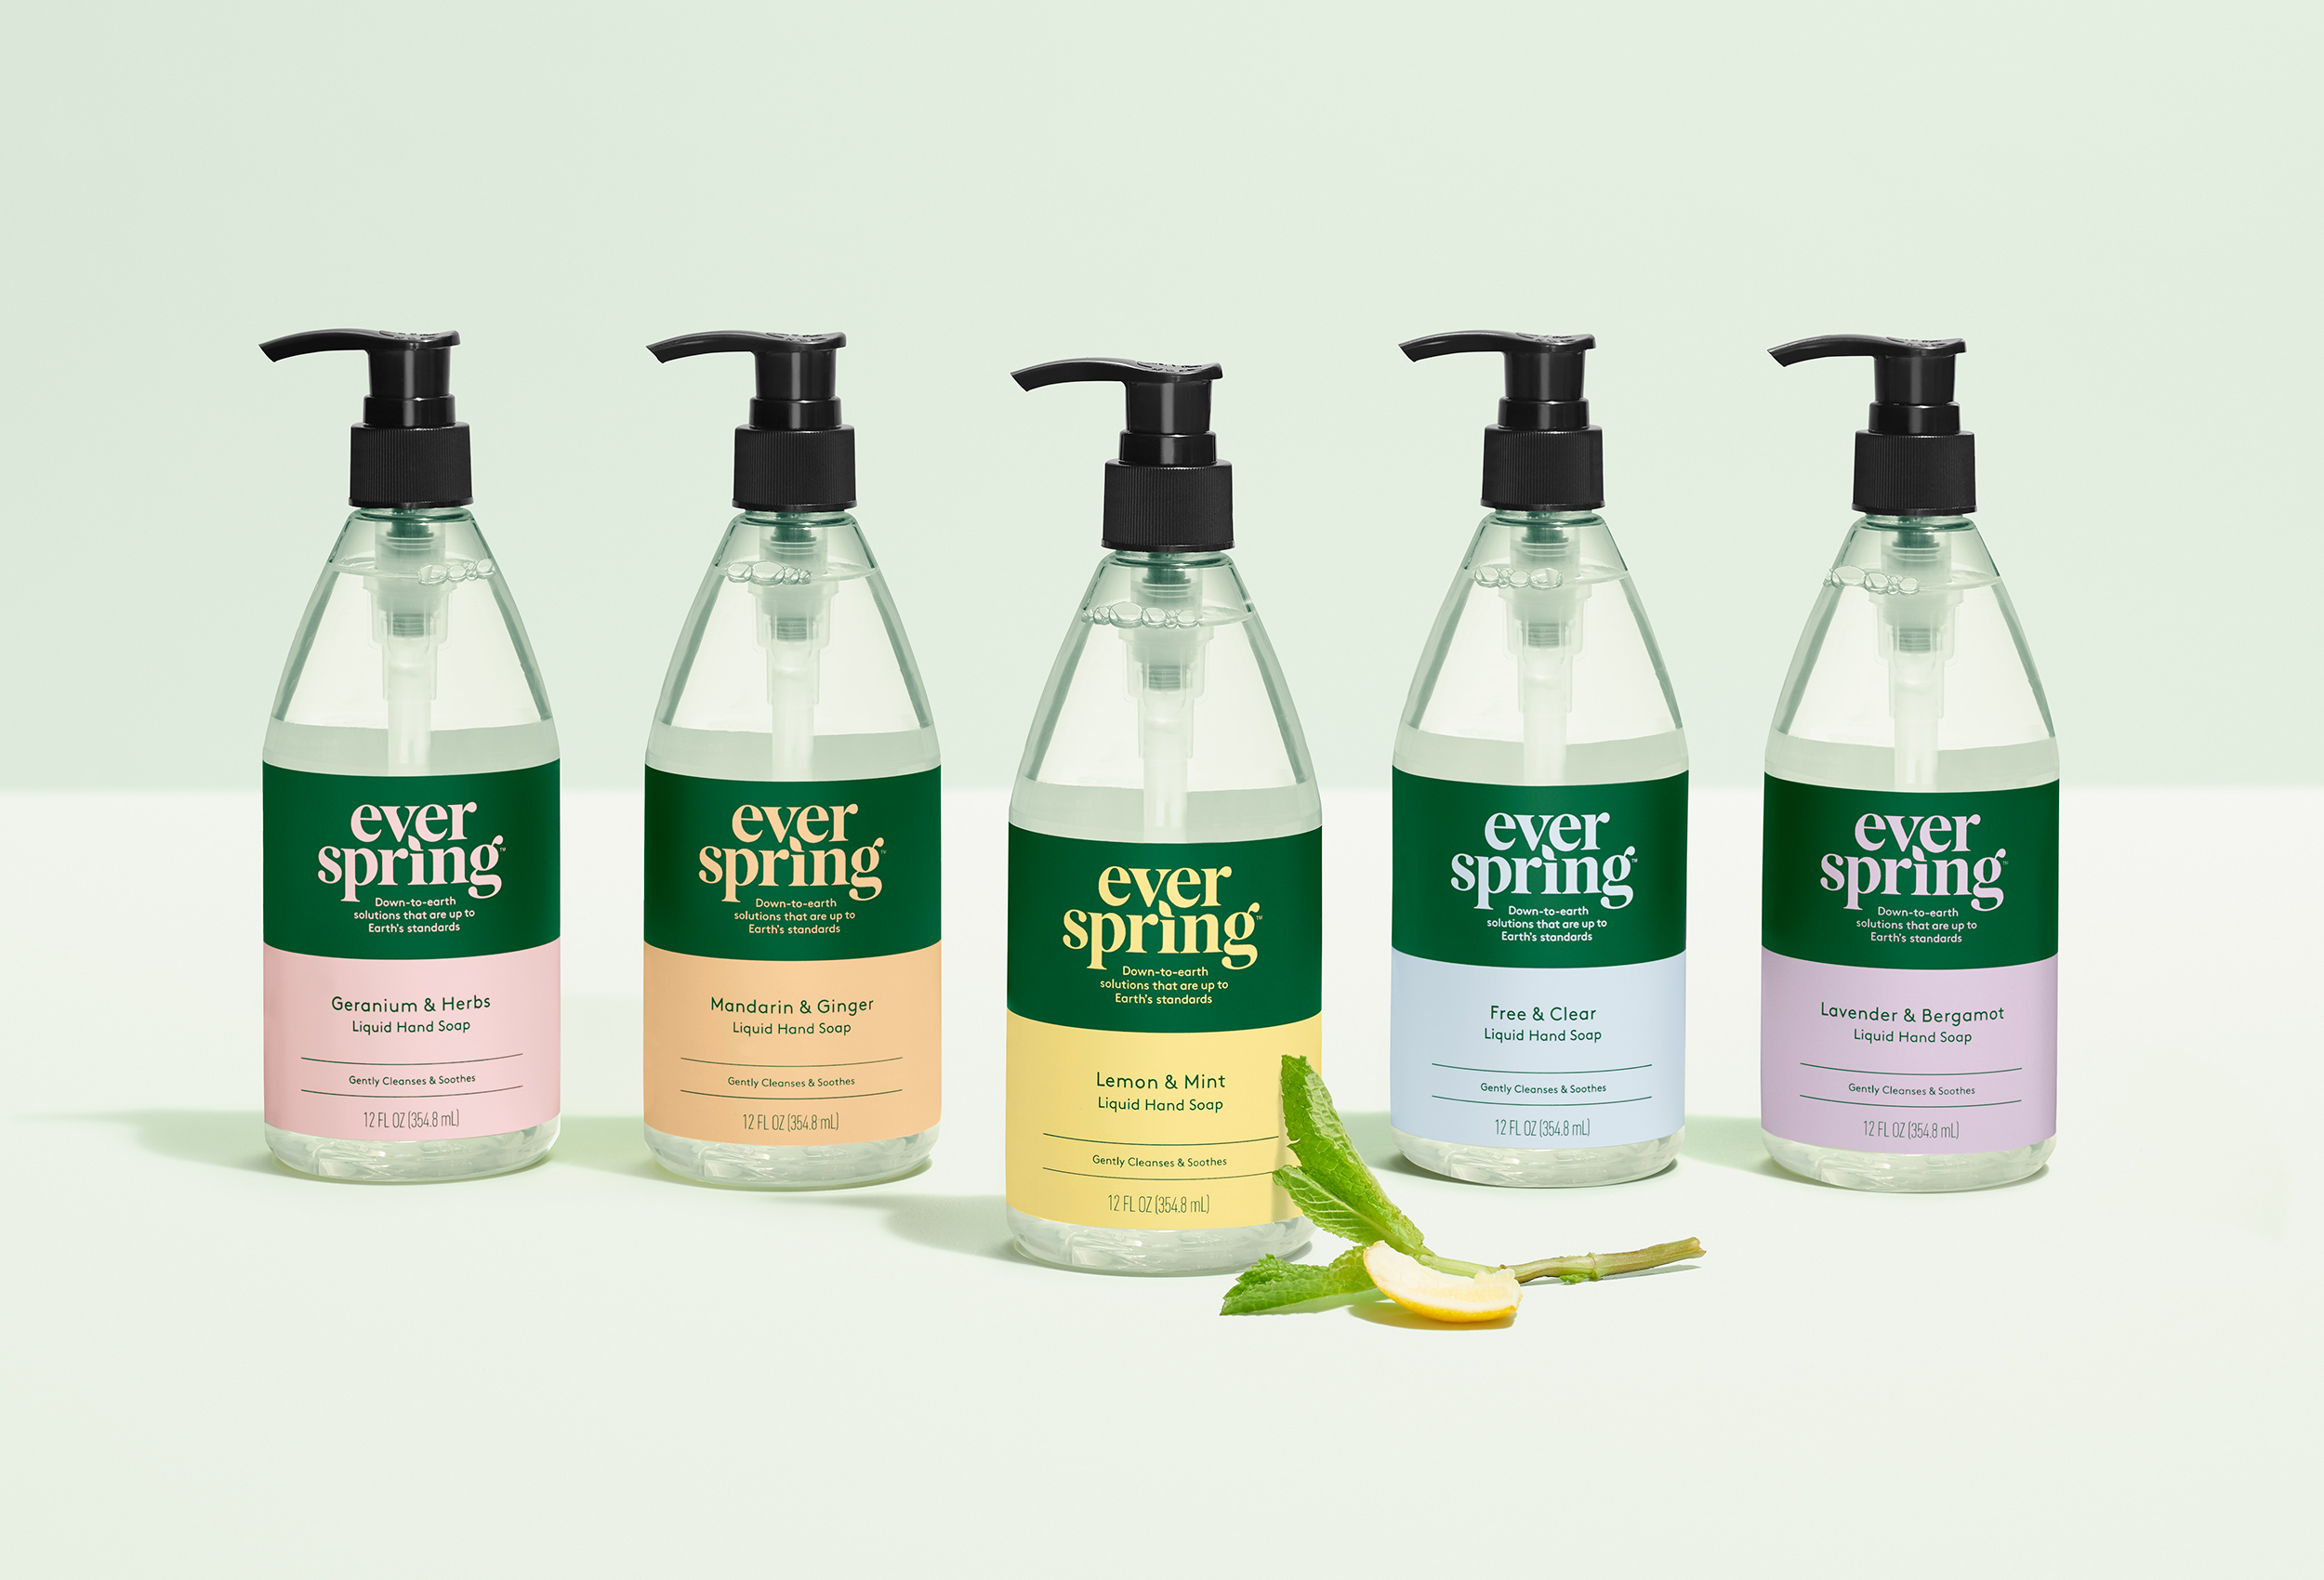 ever spring group of hand soaps